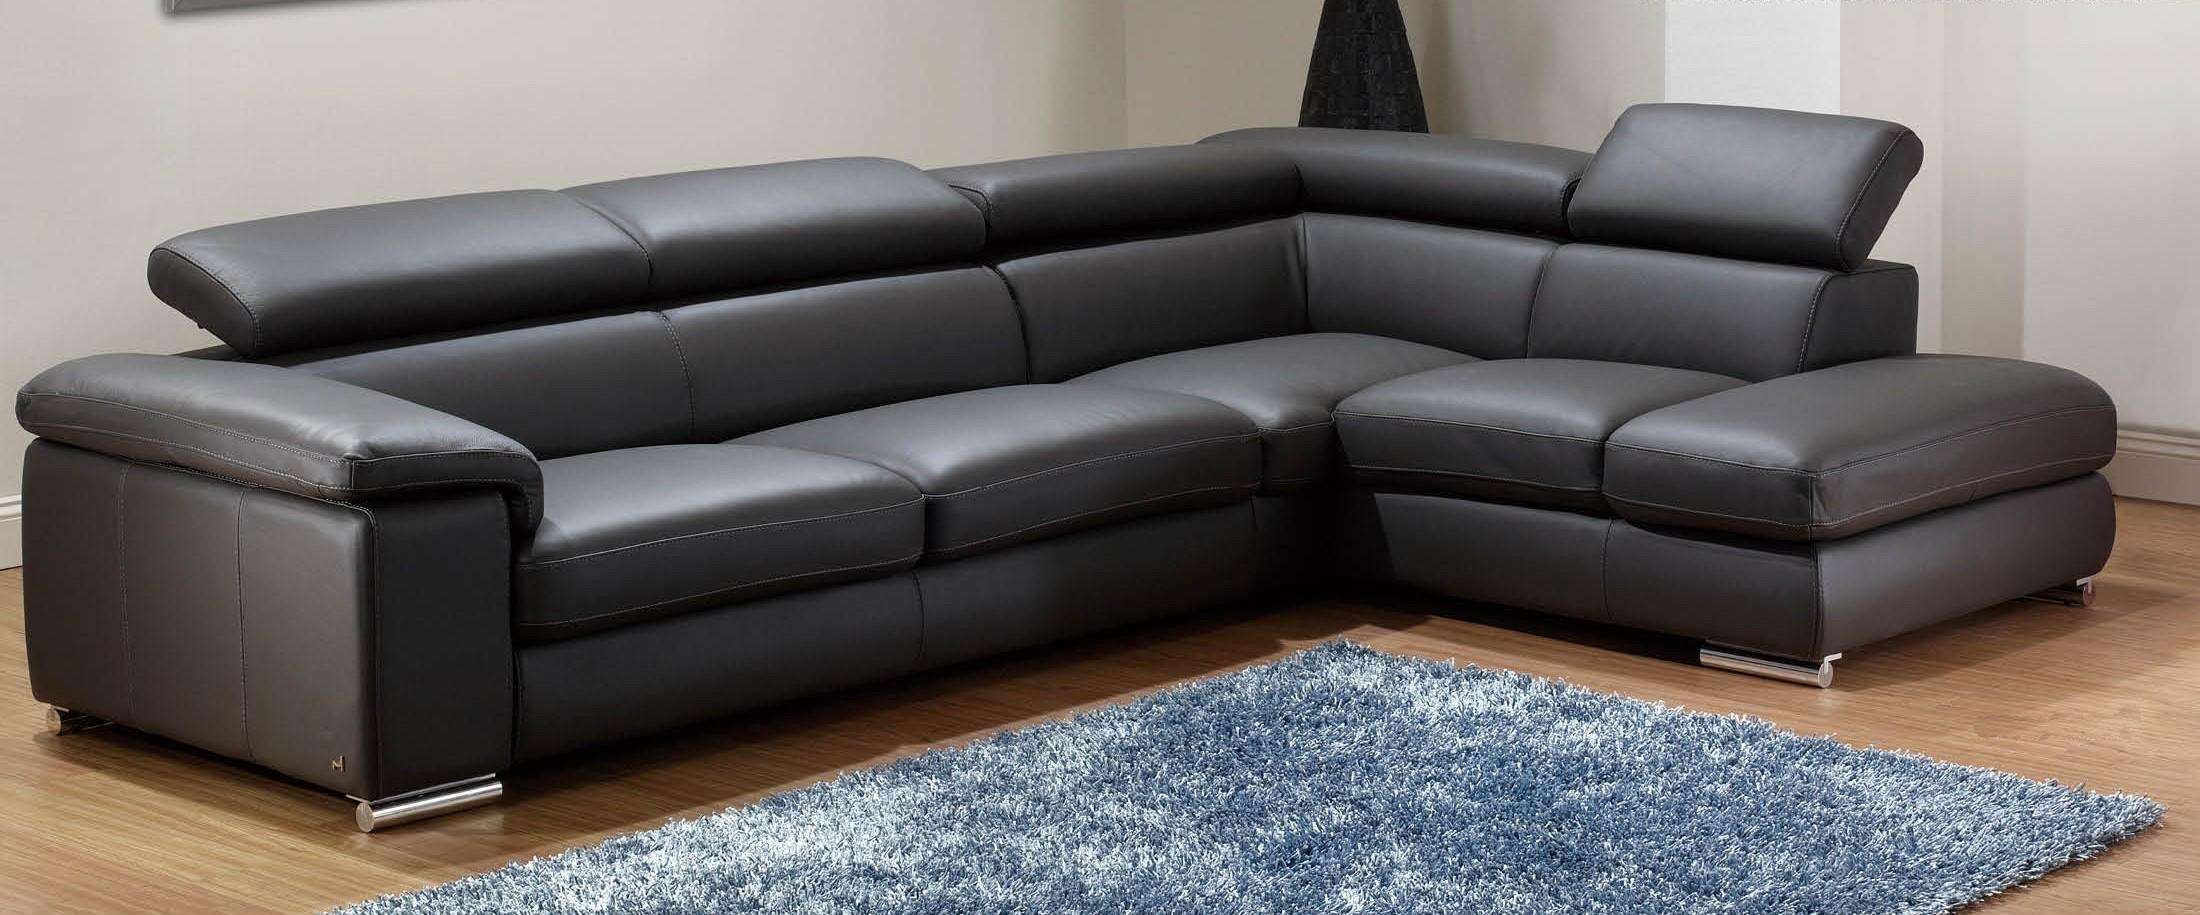 20 choices of tufted sectional with chaise sofa ideas. Black Bedroom Furniture Sets. Home Design Ideas